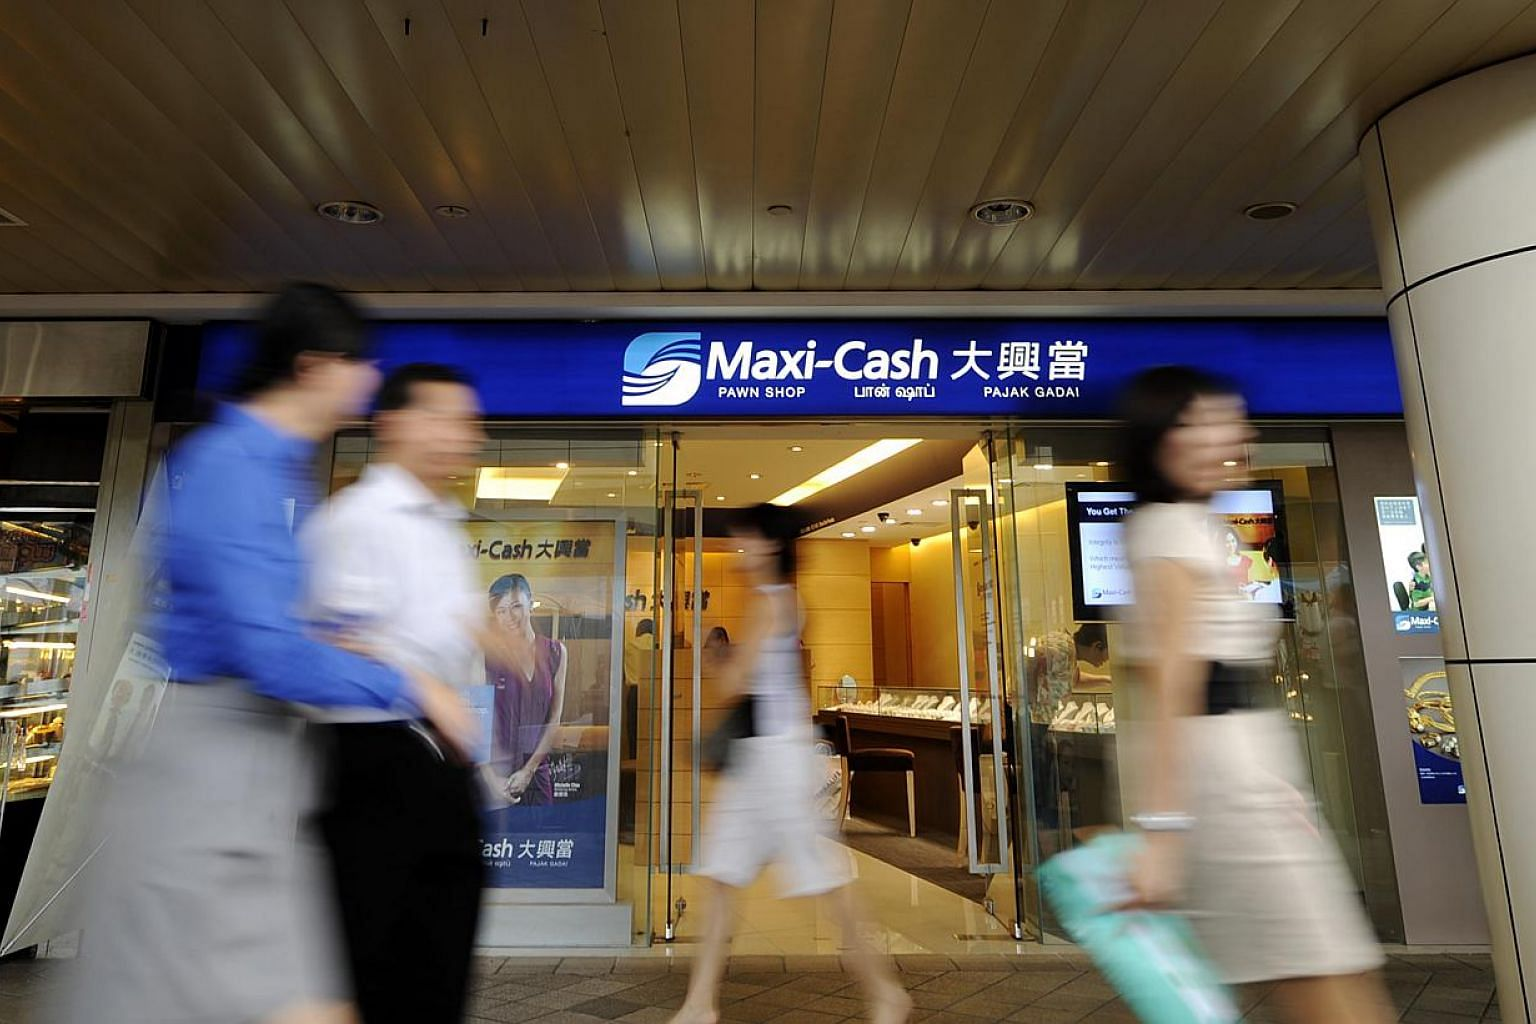 Maxi-Cash realised it had made a calculation error six months after it compensated three customers for misappropriation of their gold bars. It is suing them for unjust enrichment after they refused its demand for repayment.